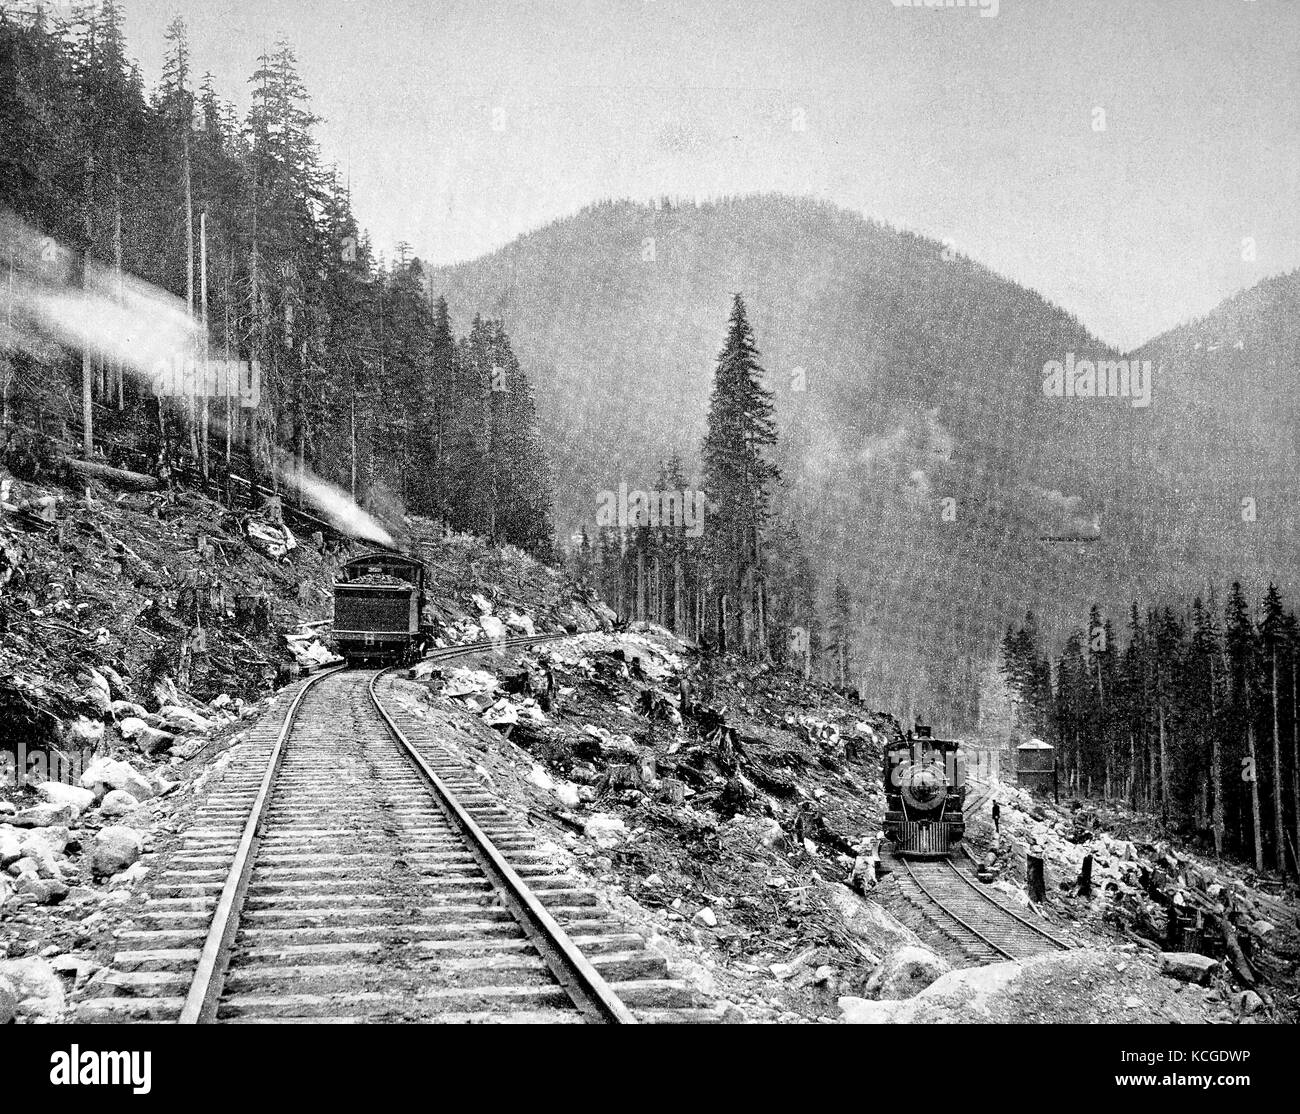 United States of America, the railway line of the Great Northern Railway at the switch-back, part of the Cascade - Stock Image